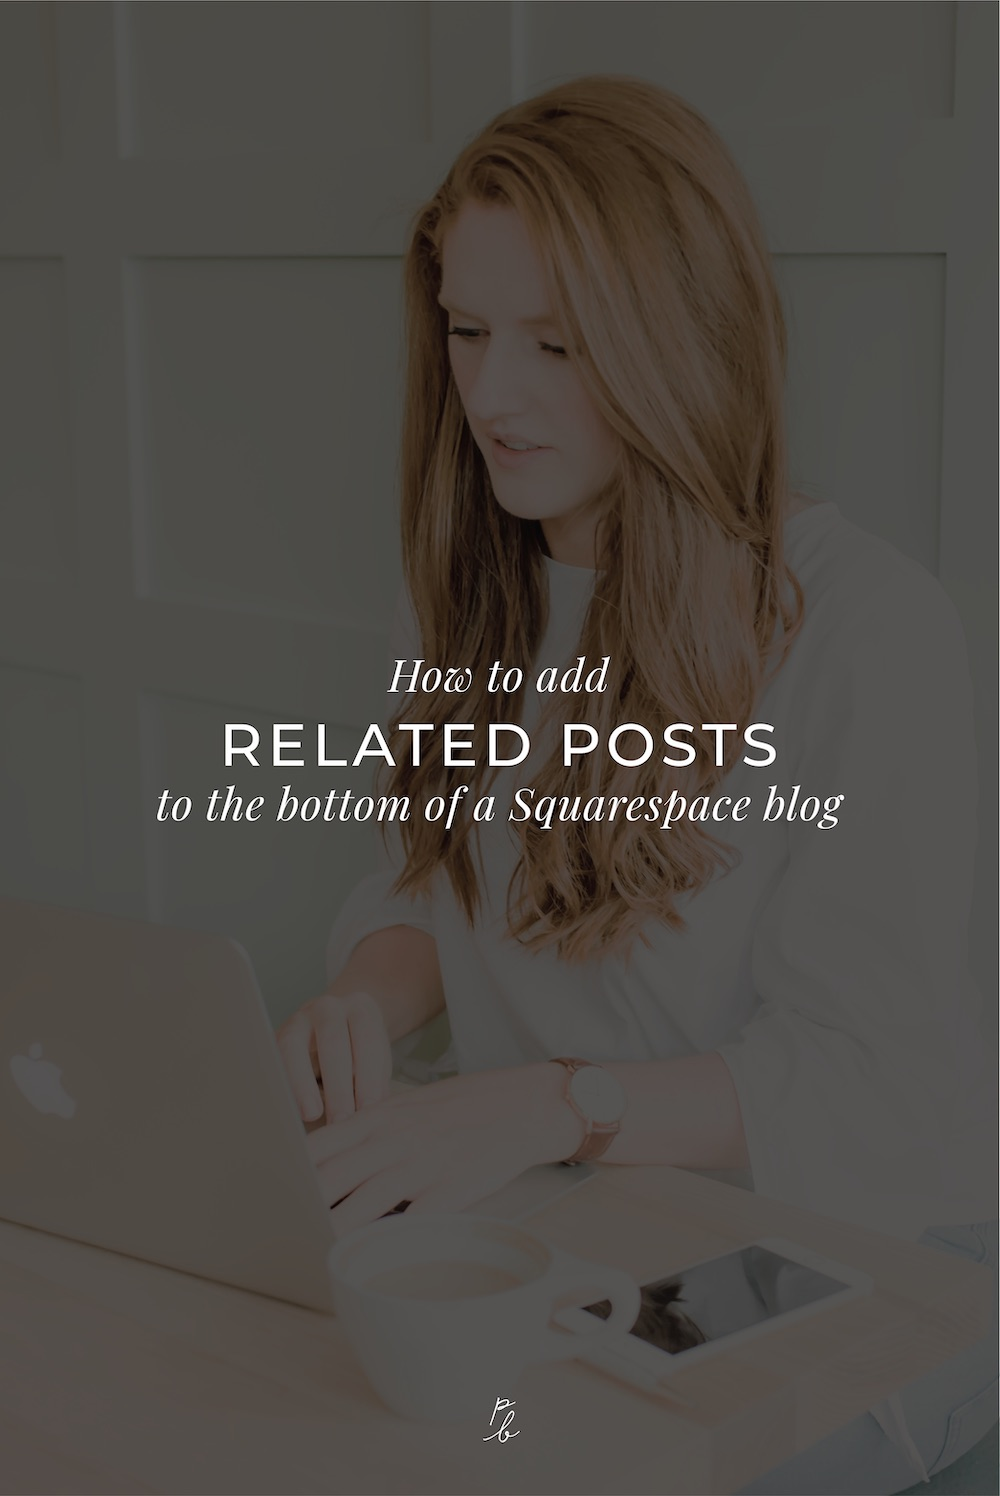 2-How to add related posts to the bottom of a Squarespace blog.jpg